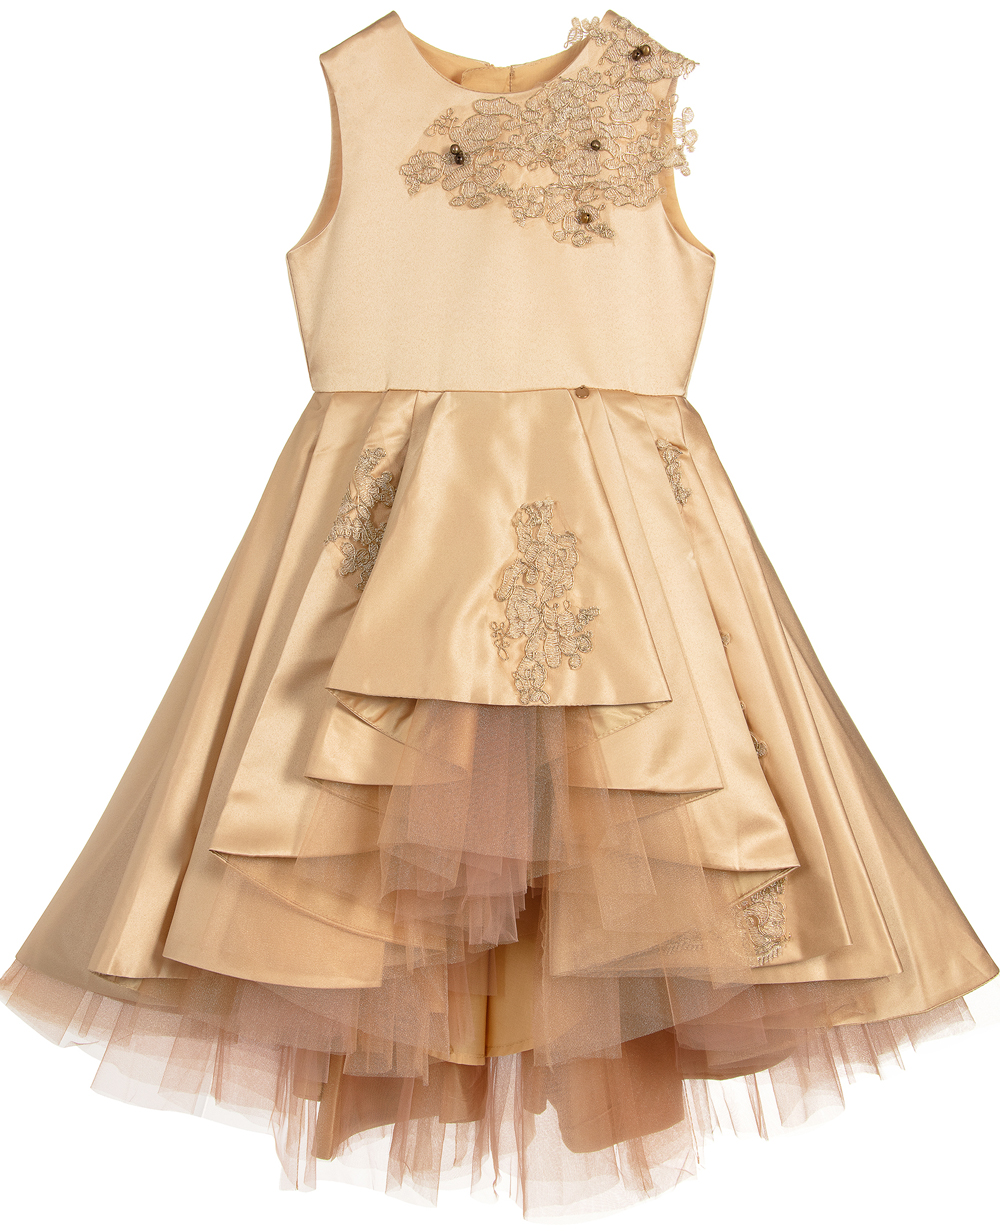 Gold Satin Lace Dress Sleeveless